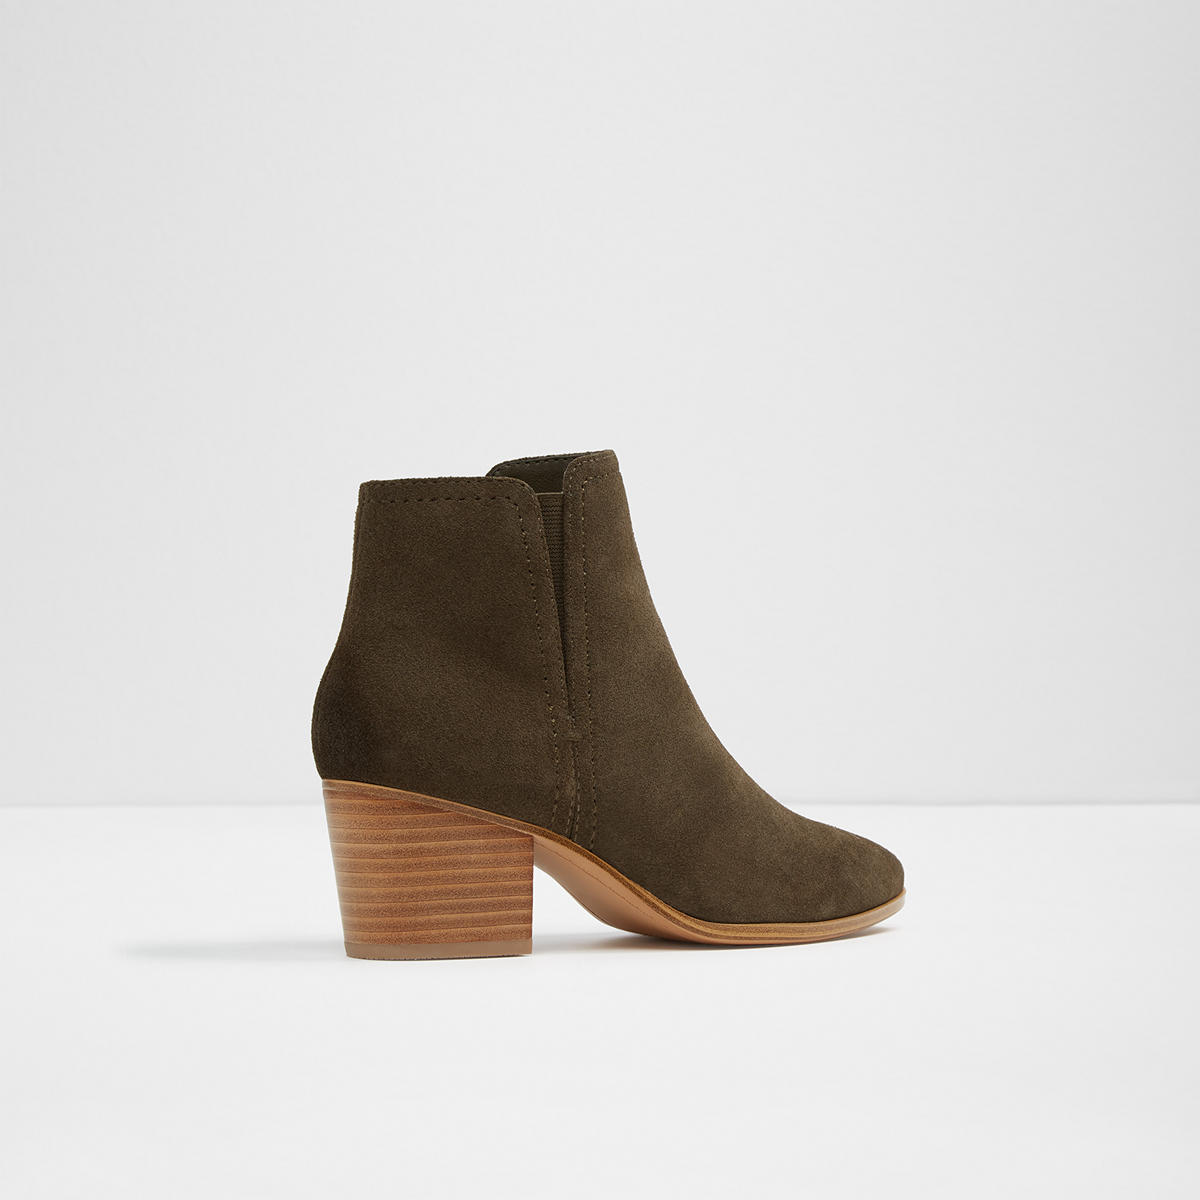 Womens Larissi Boots Aldo Free Shipping Many Kinds Of Buy Cheap Cheapest Best Authentic Wiki CkJpO